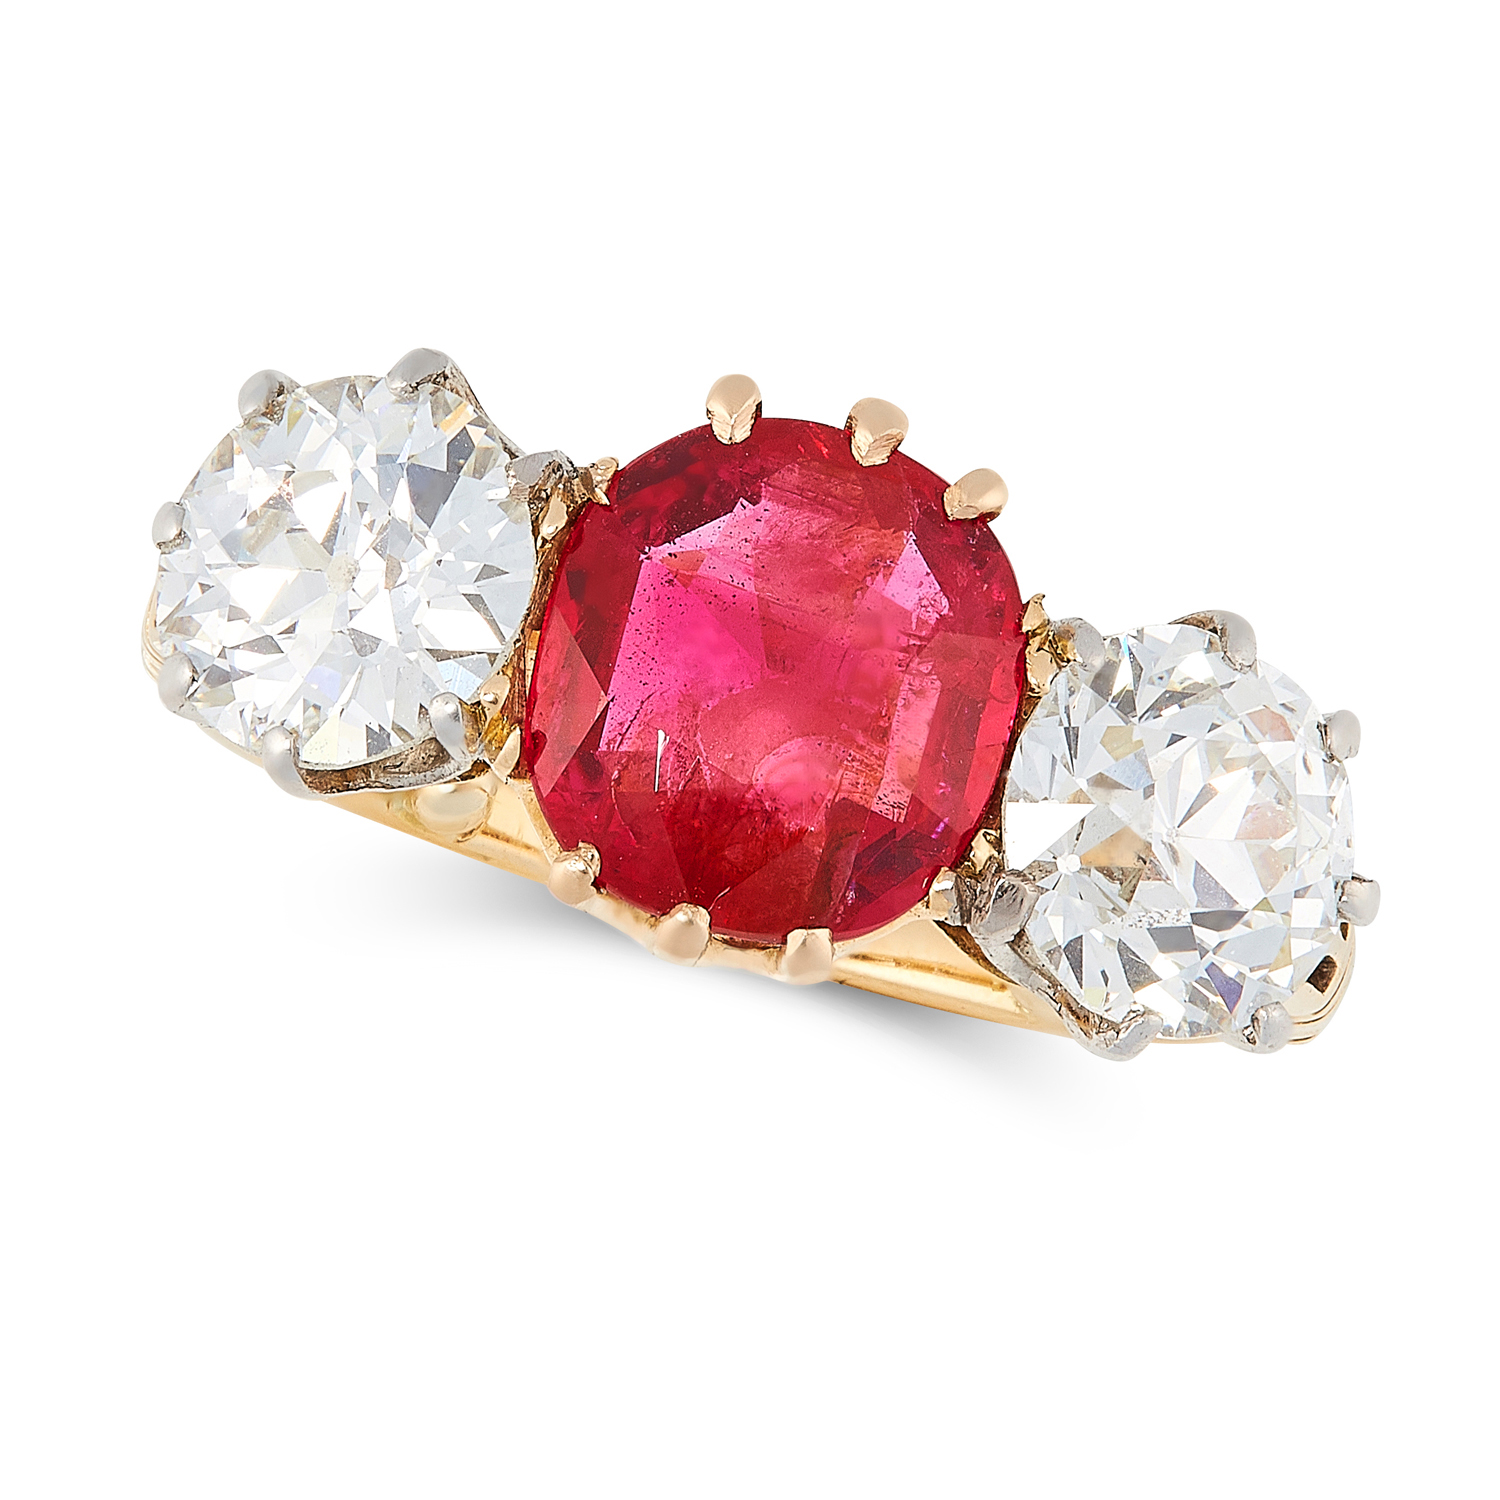 A 1.83 BURMA NO HEAT RUBY AND DIAMOND THREE STONE RING, CIRCA 1950 in 18ct yellow gold and platinum,